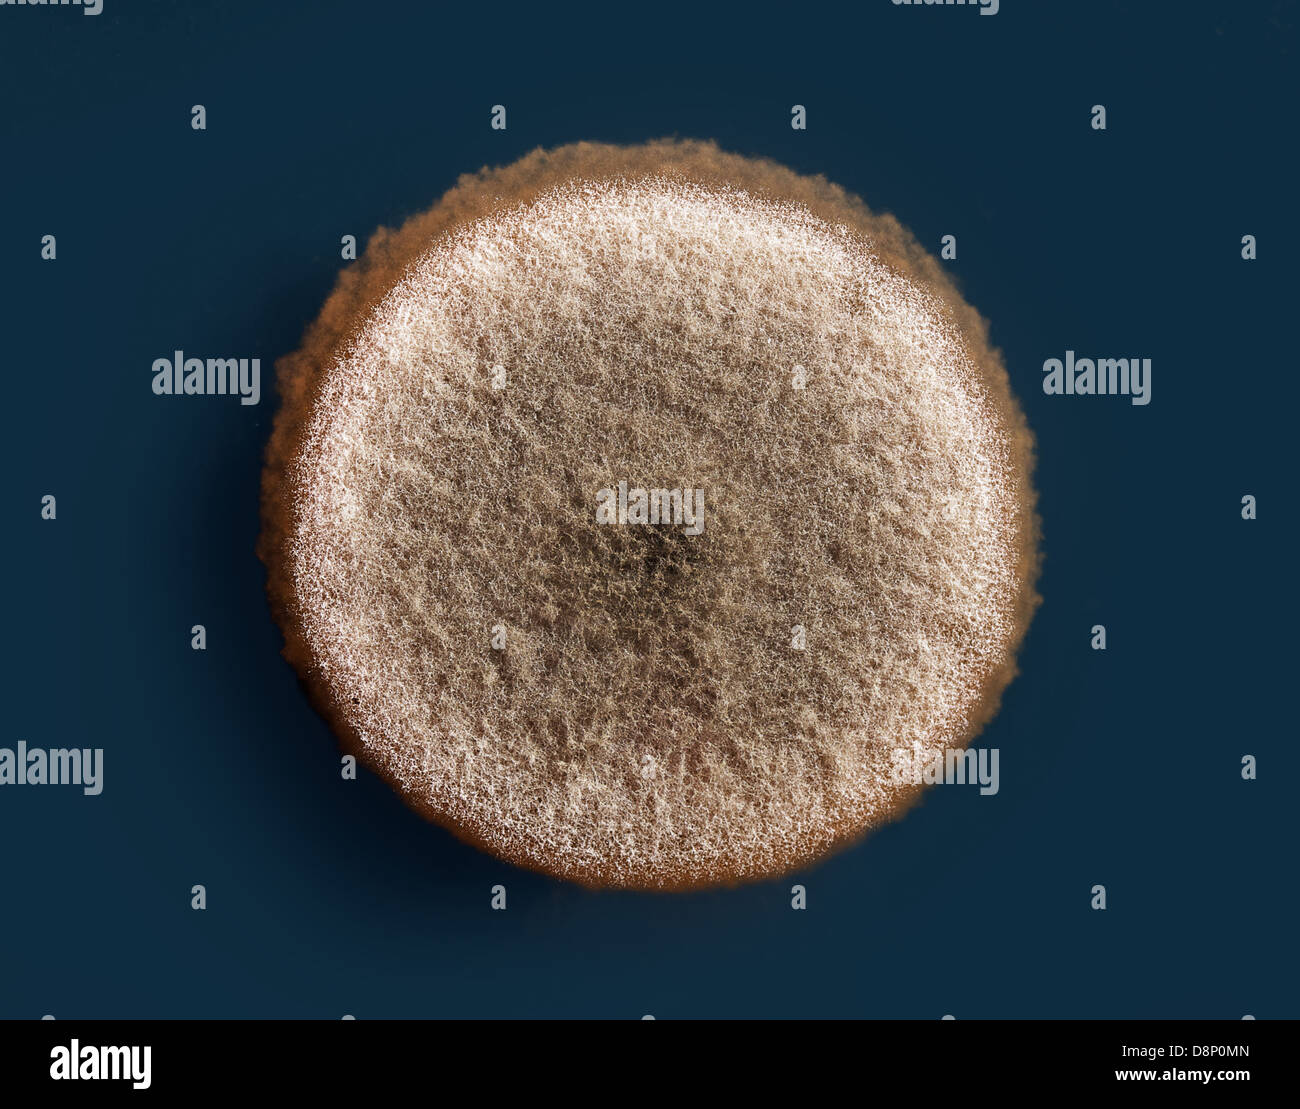 a mold colony on an agar plate (aspergillus niger) - Stock Image